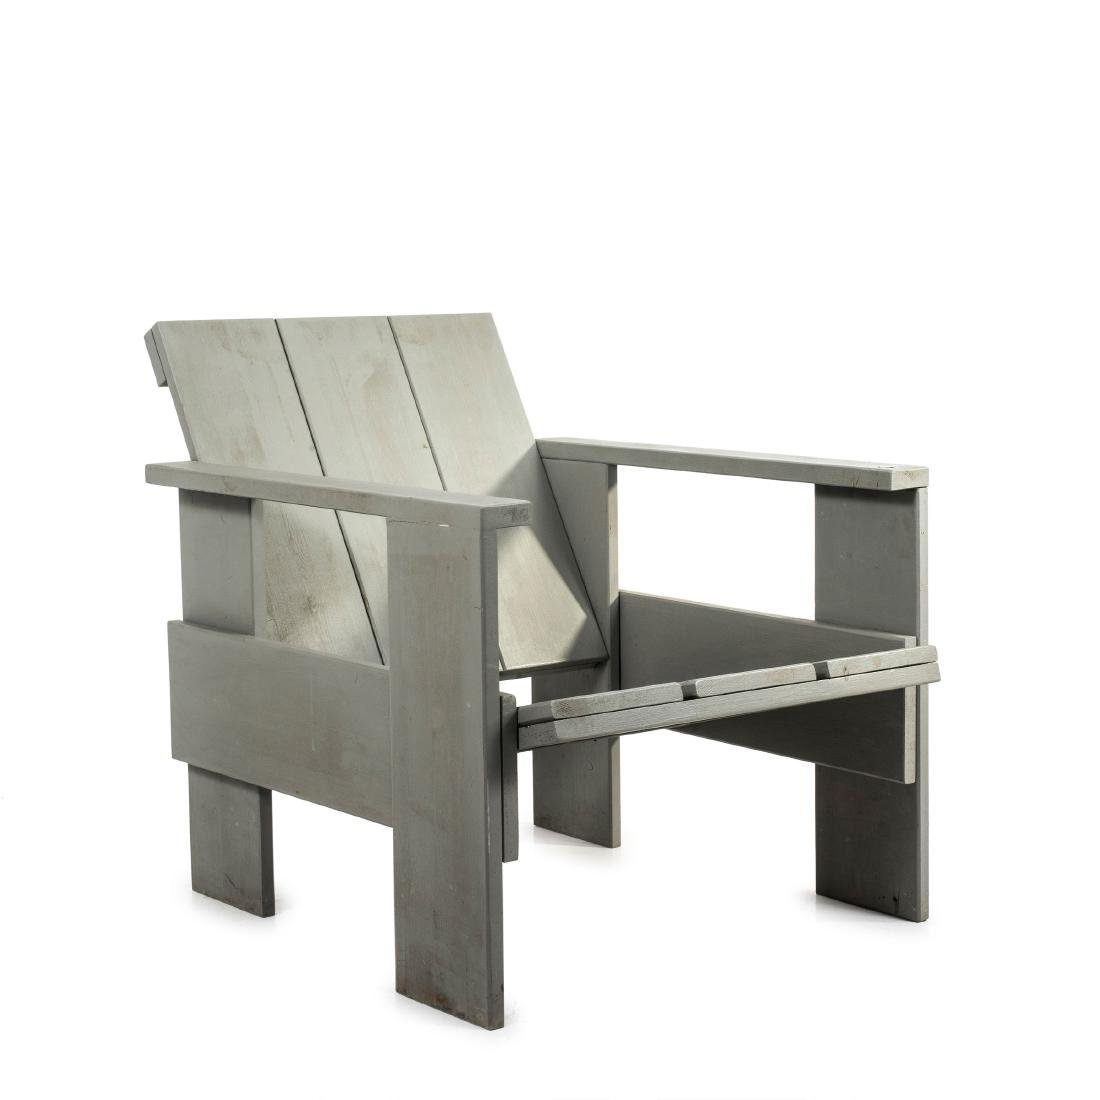 'Crate chair', 1934